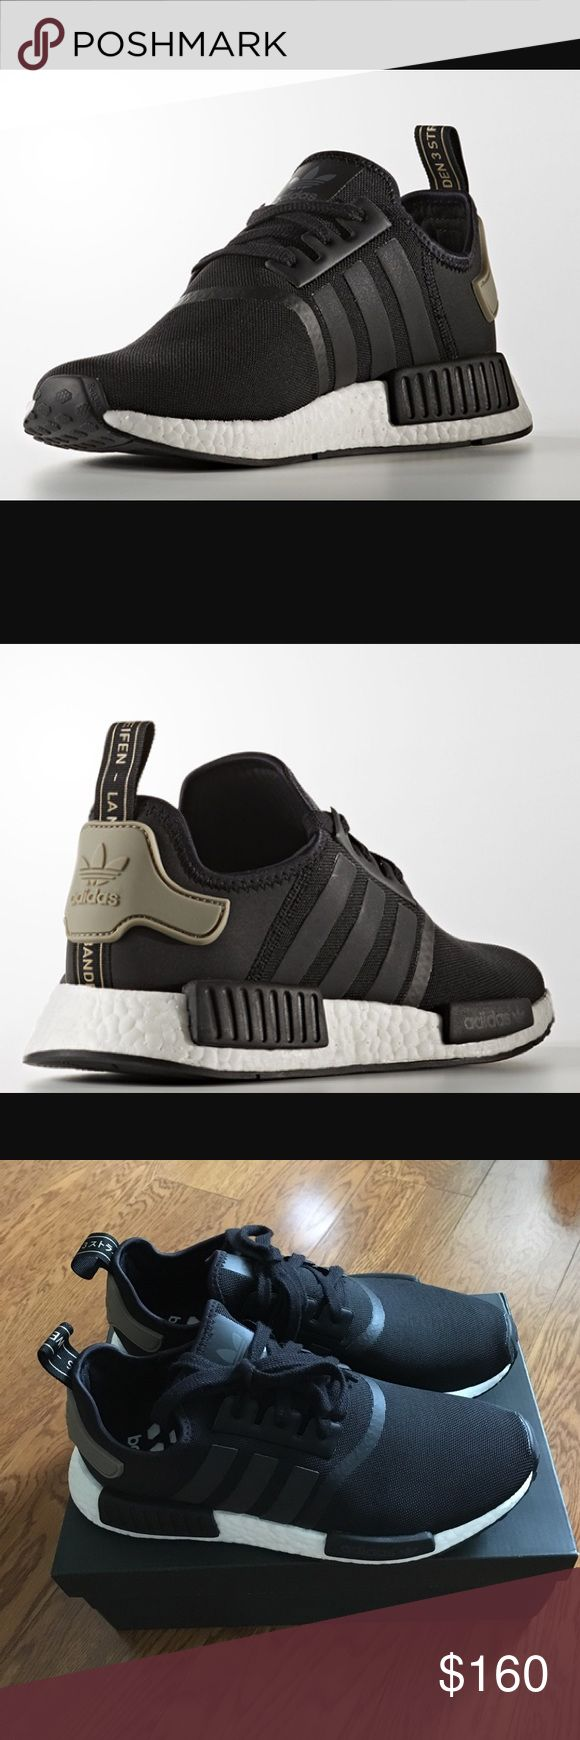 Men's Adidas NMD Runner Casual Shoes Brand new with original box. Adidas Shoes Athletic Shoes